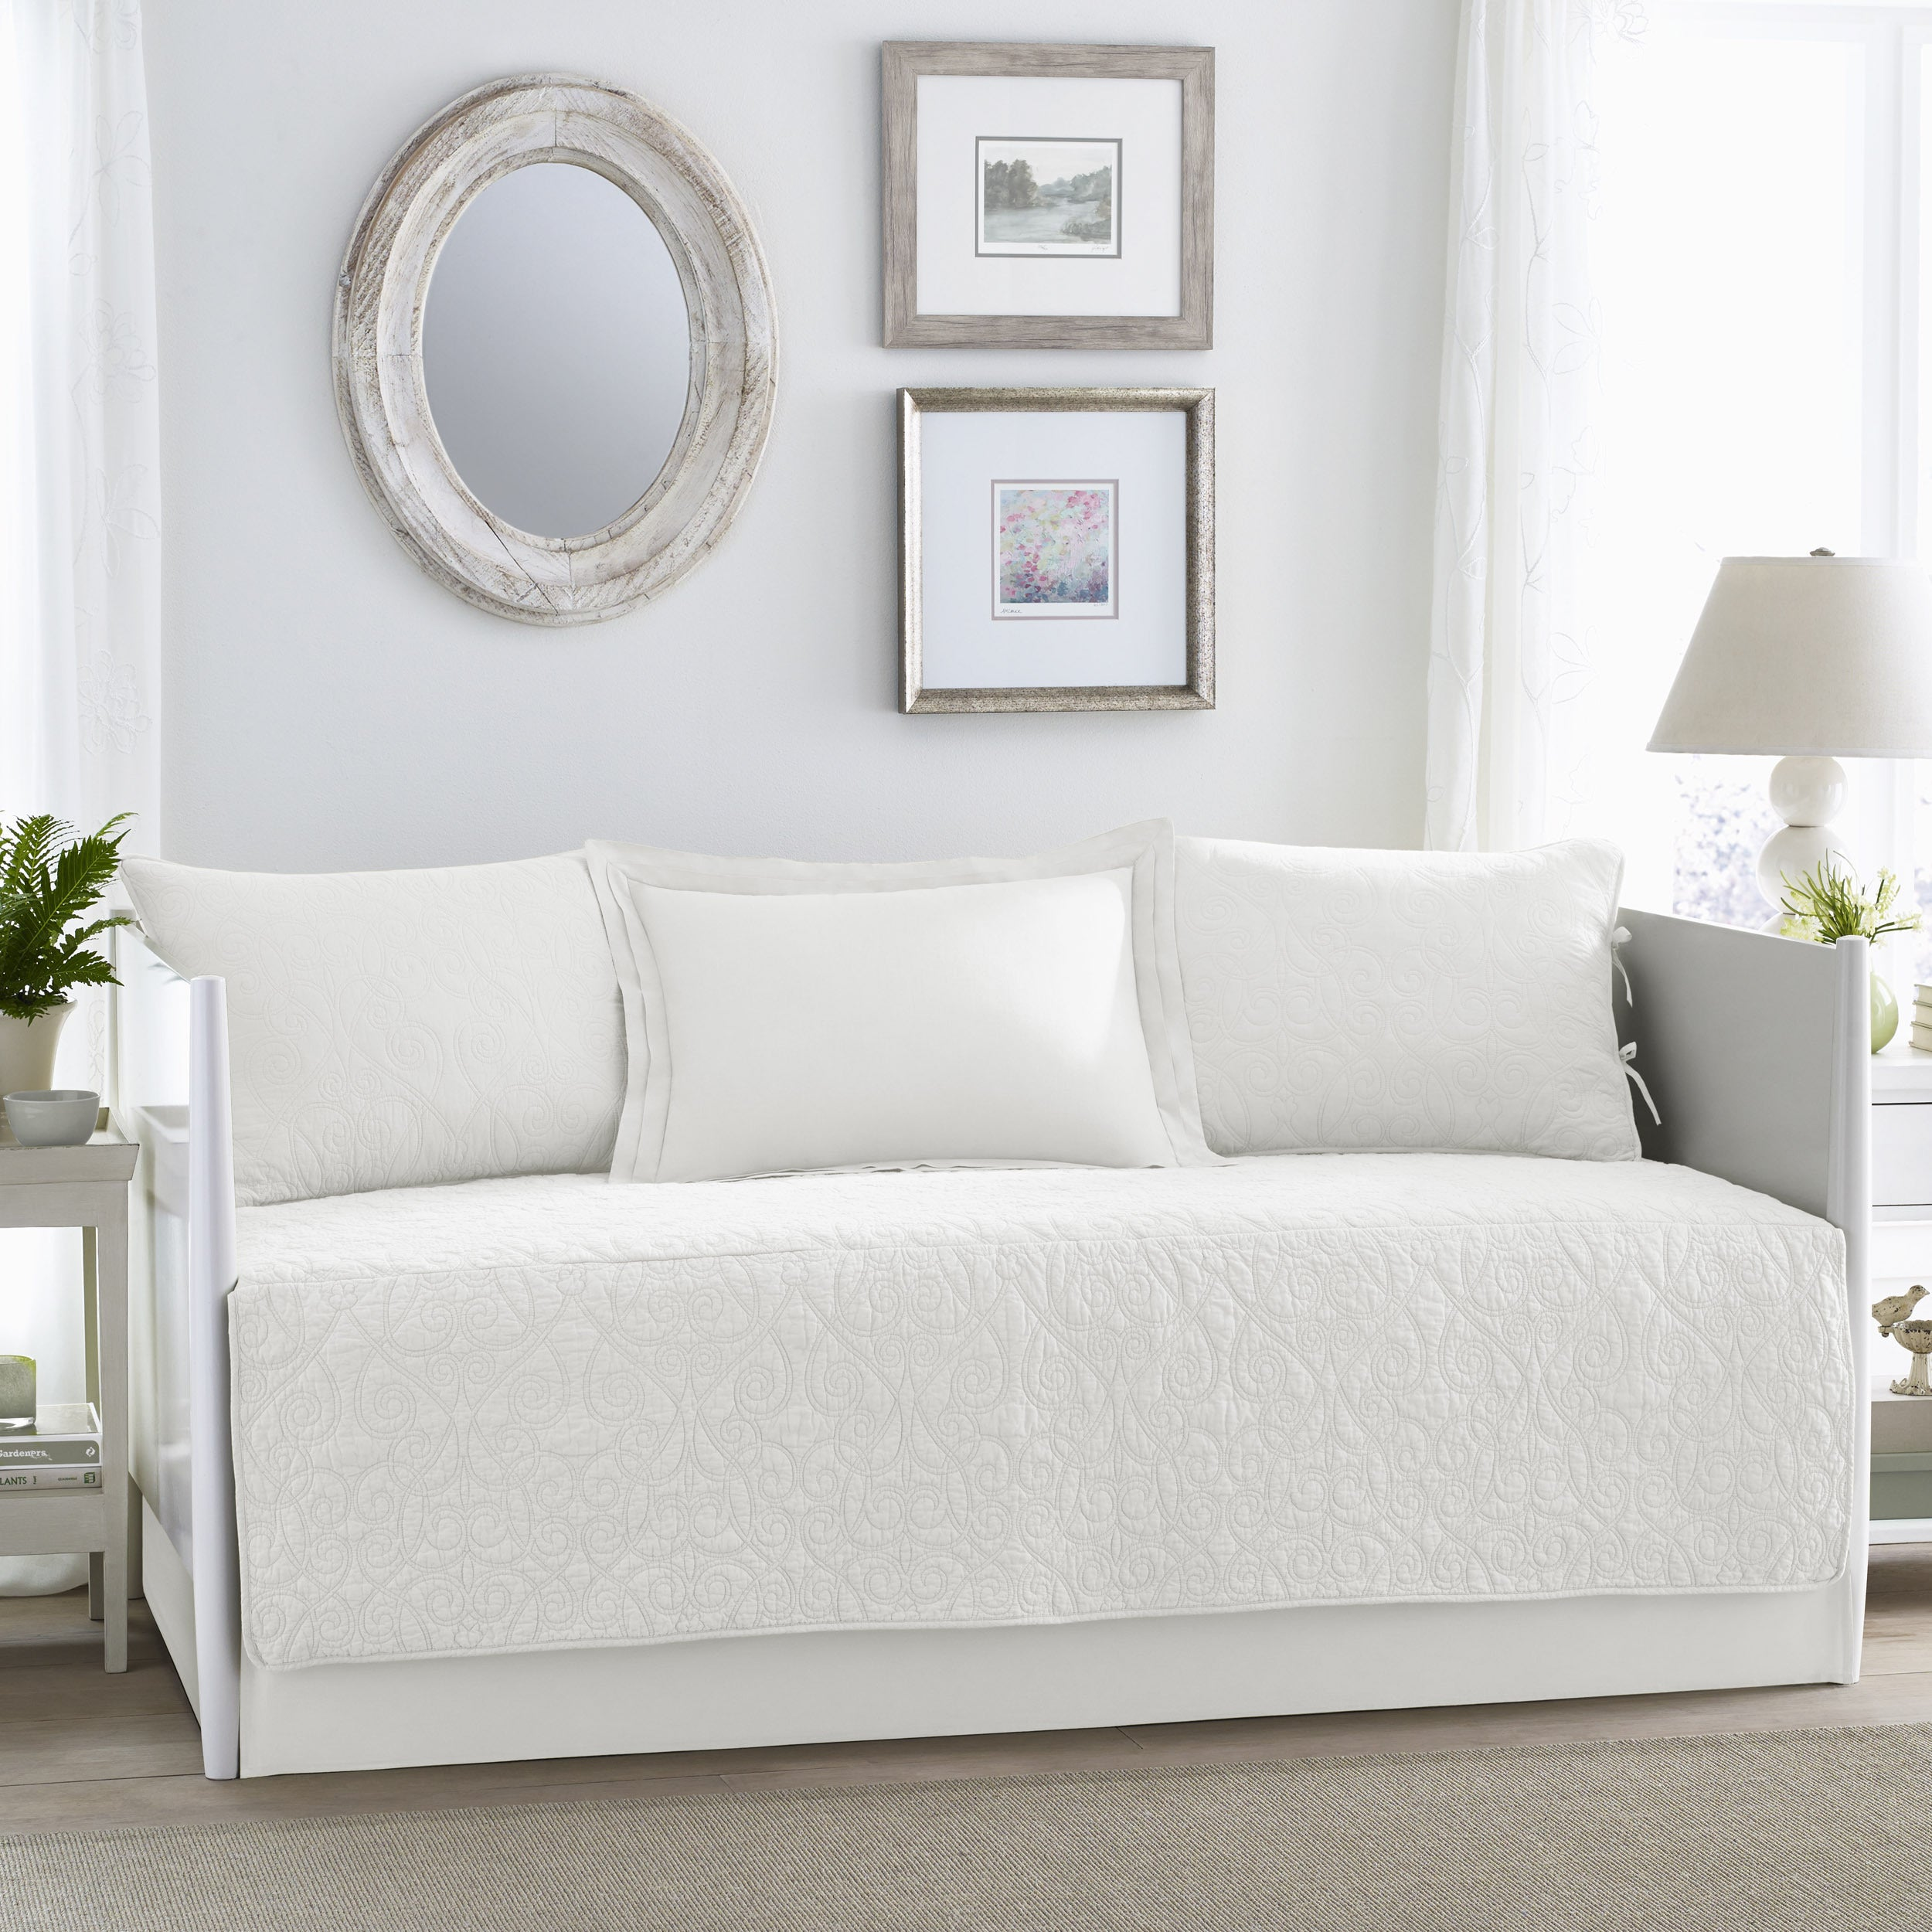 Laura Ashley Felicity White 5-piece Daybed Cover Set (Day...